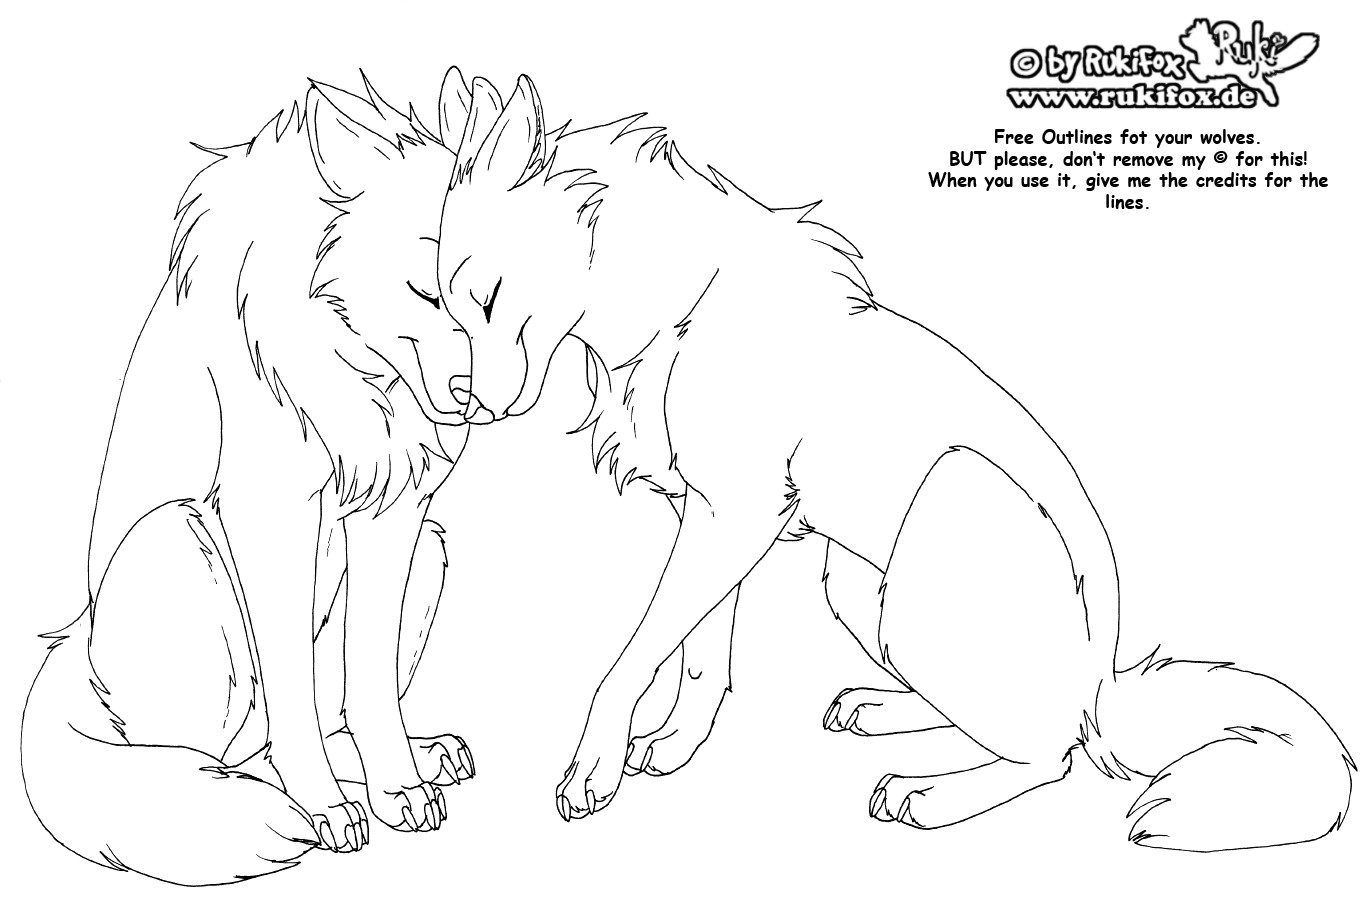 Wolves Free outline by RukiFox on DeviantArt